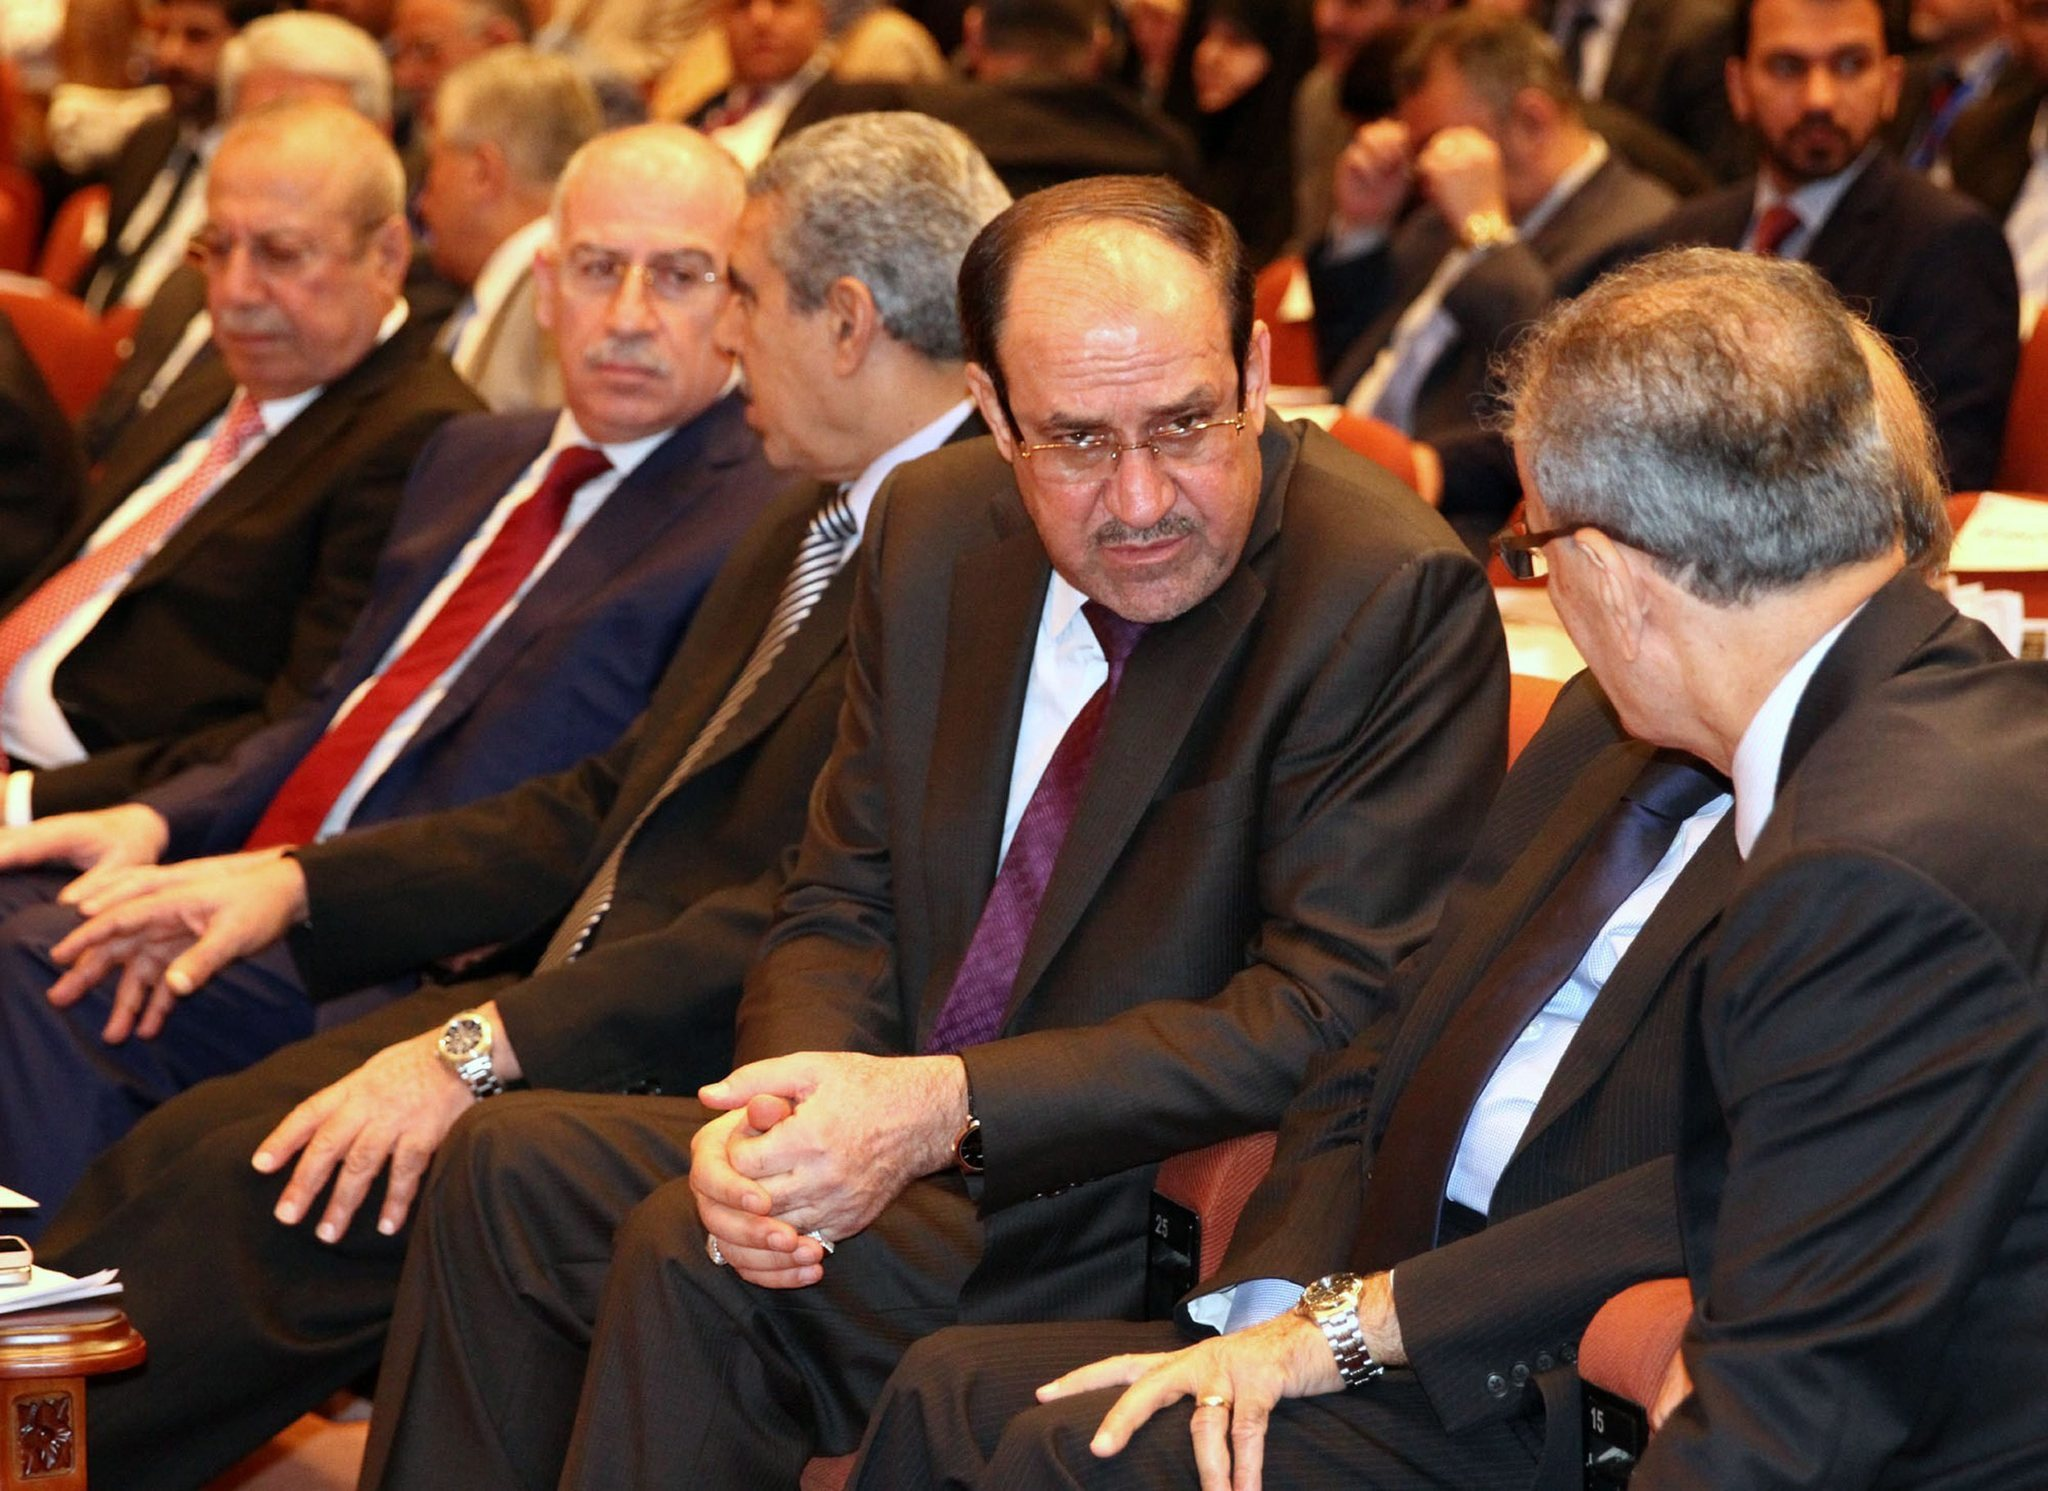 Iraq's Prime Minister Nouri Maliki offers amnesty to opponents